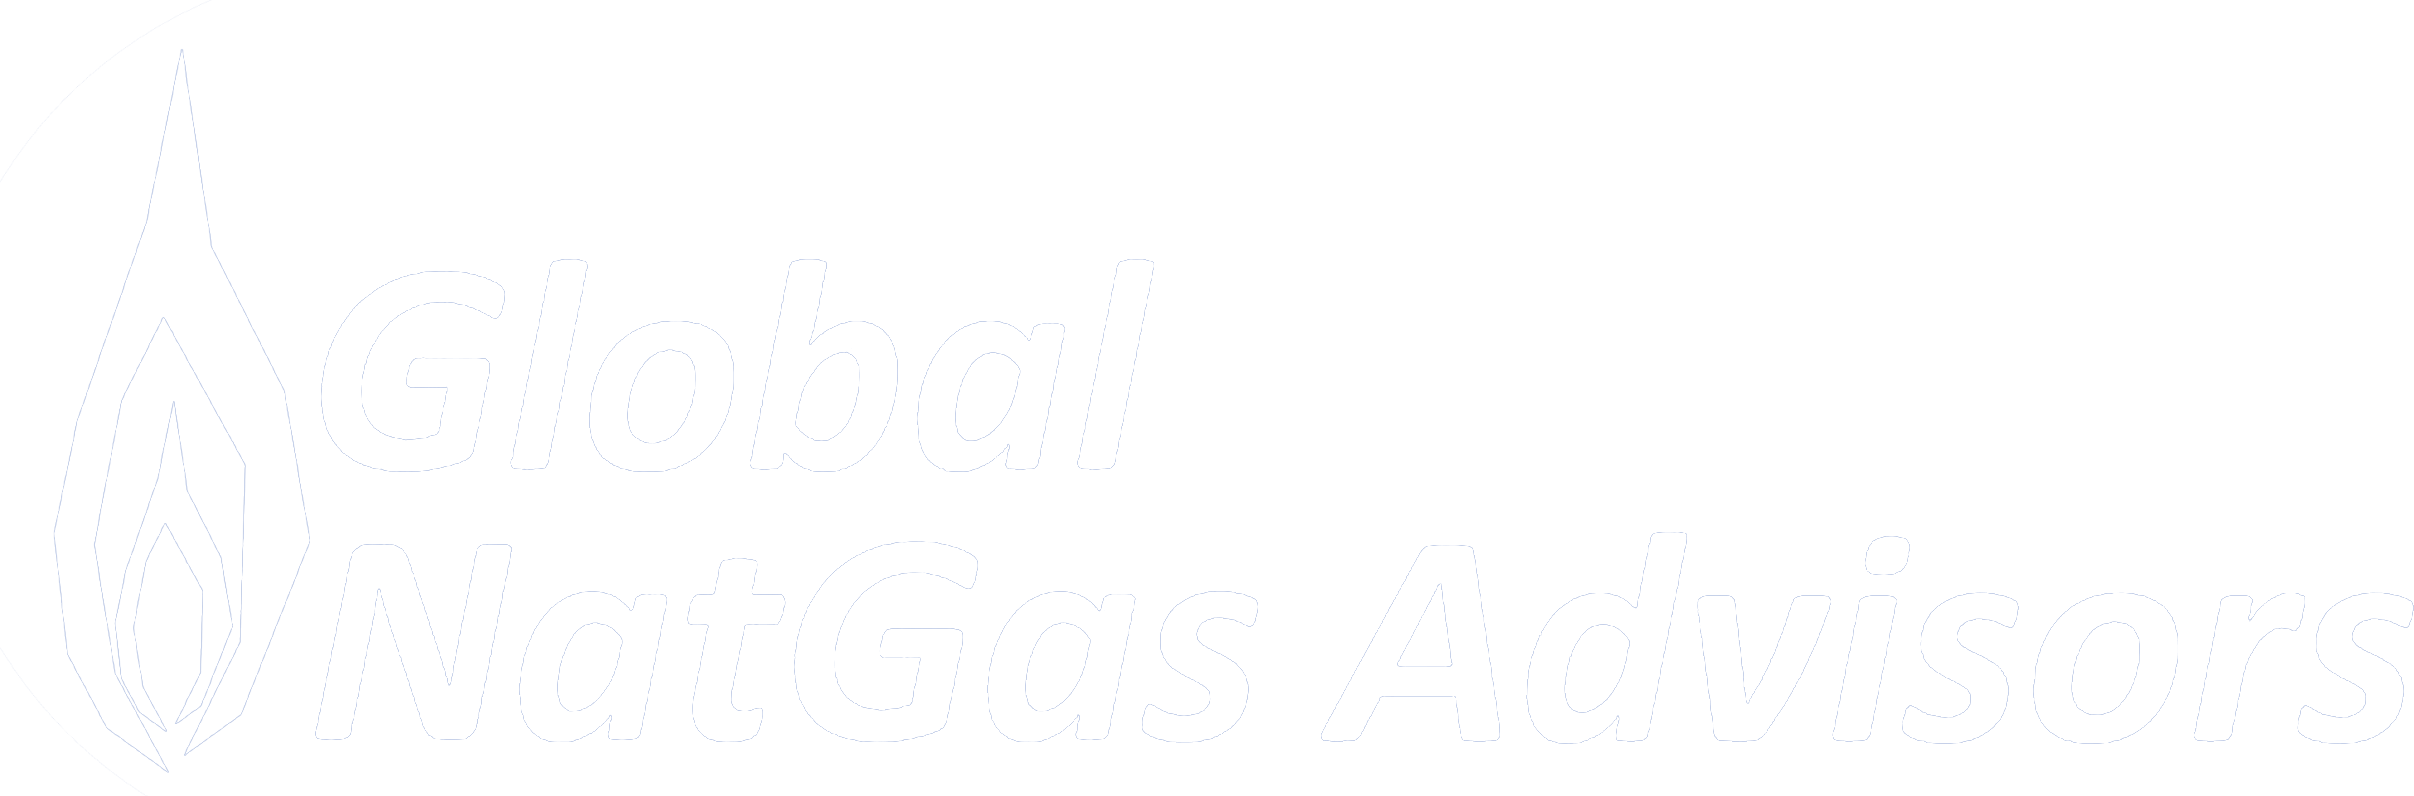 GLOBAL NATGAS ADVISORS